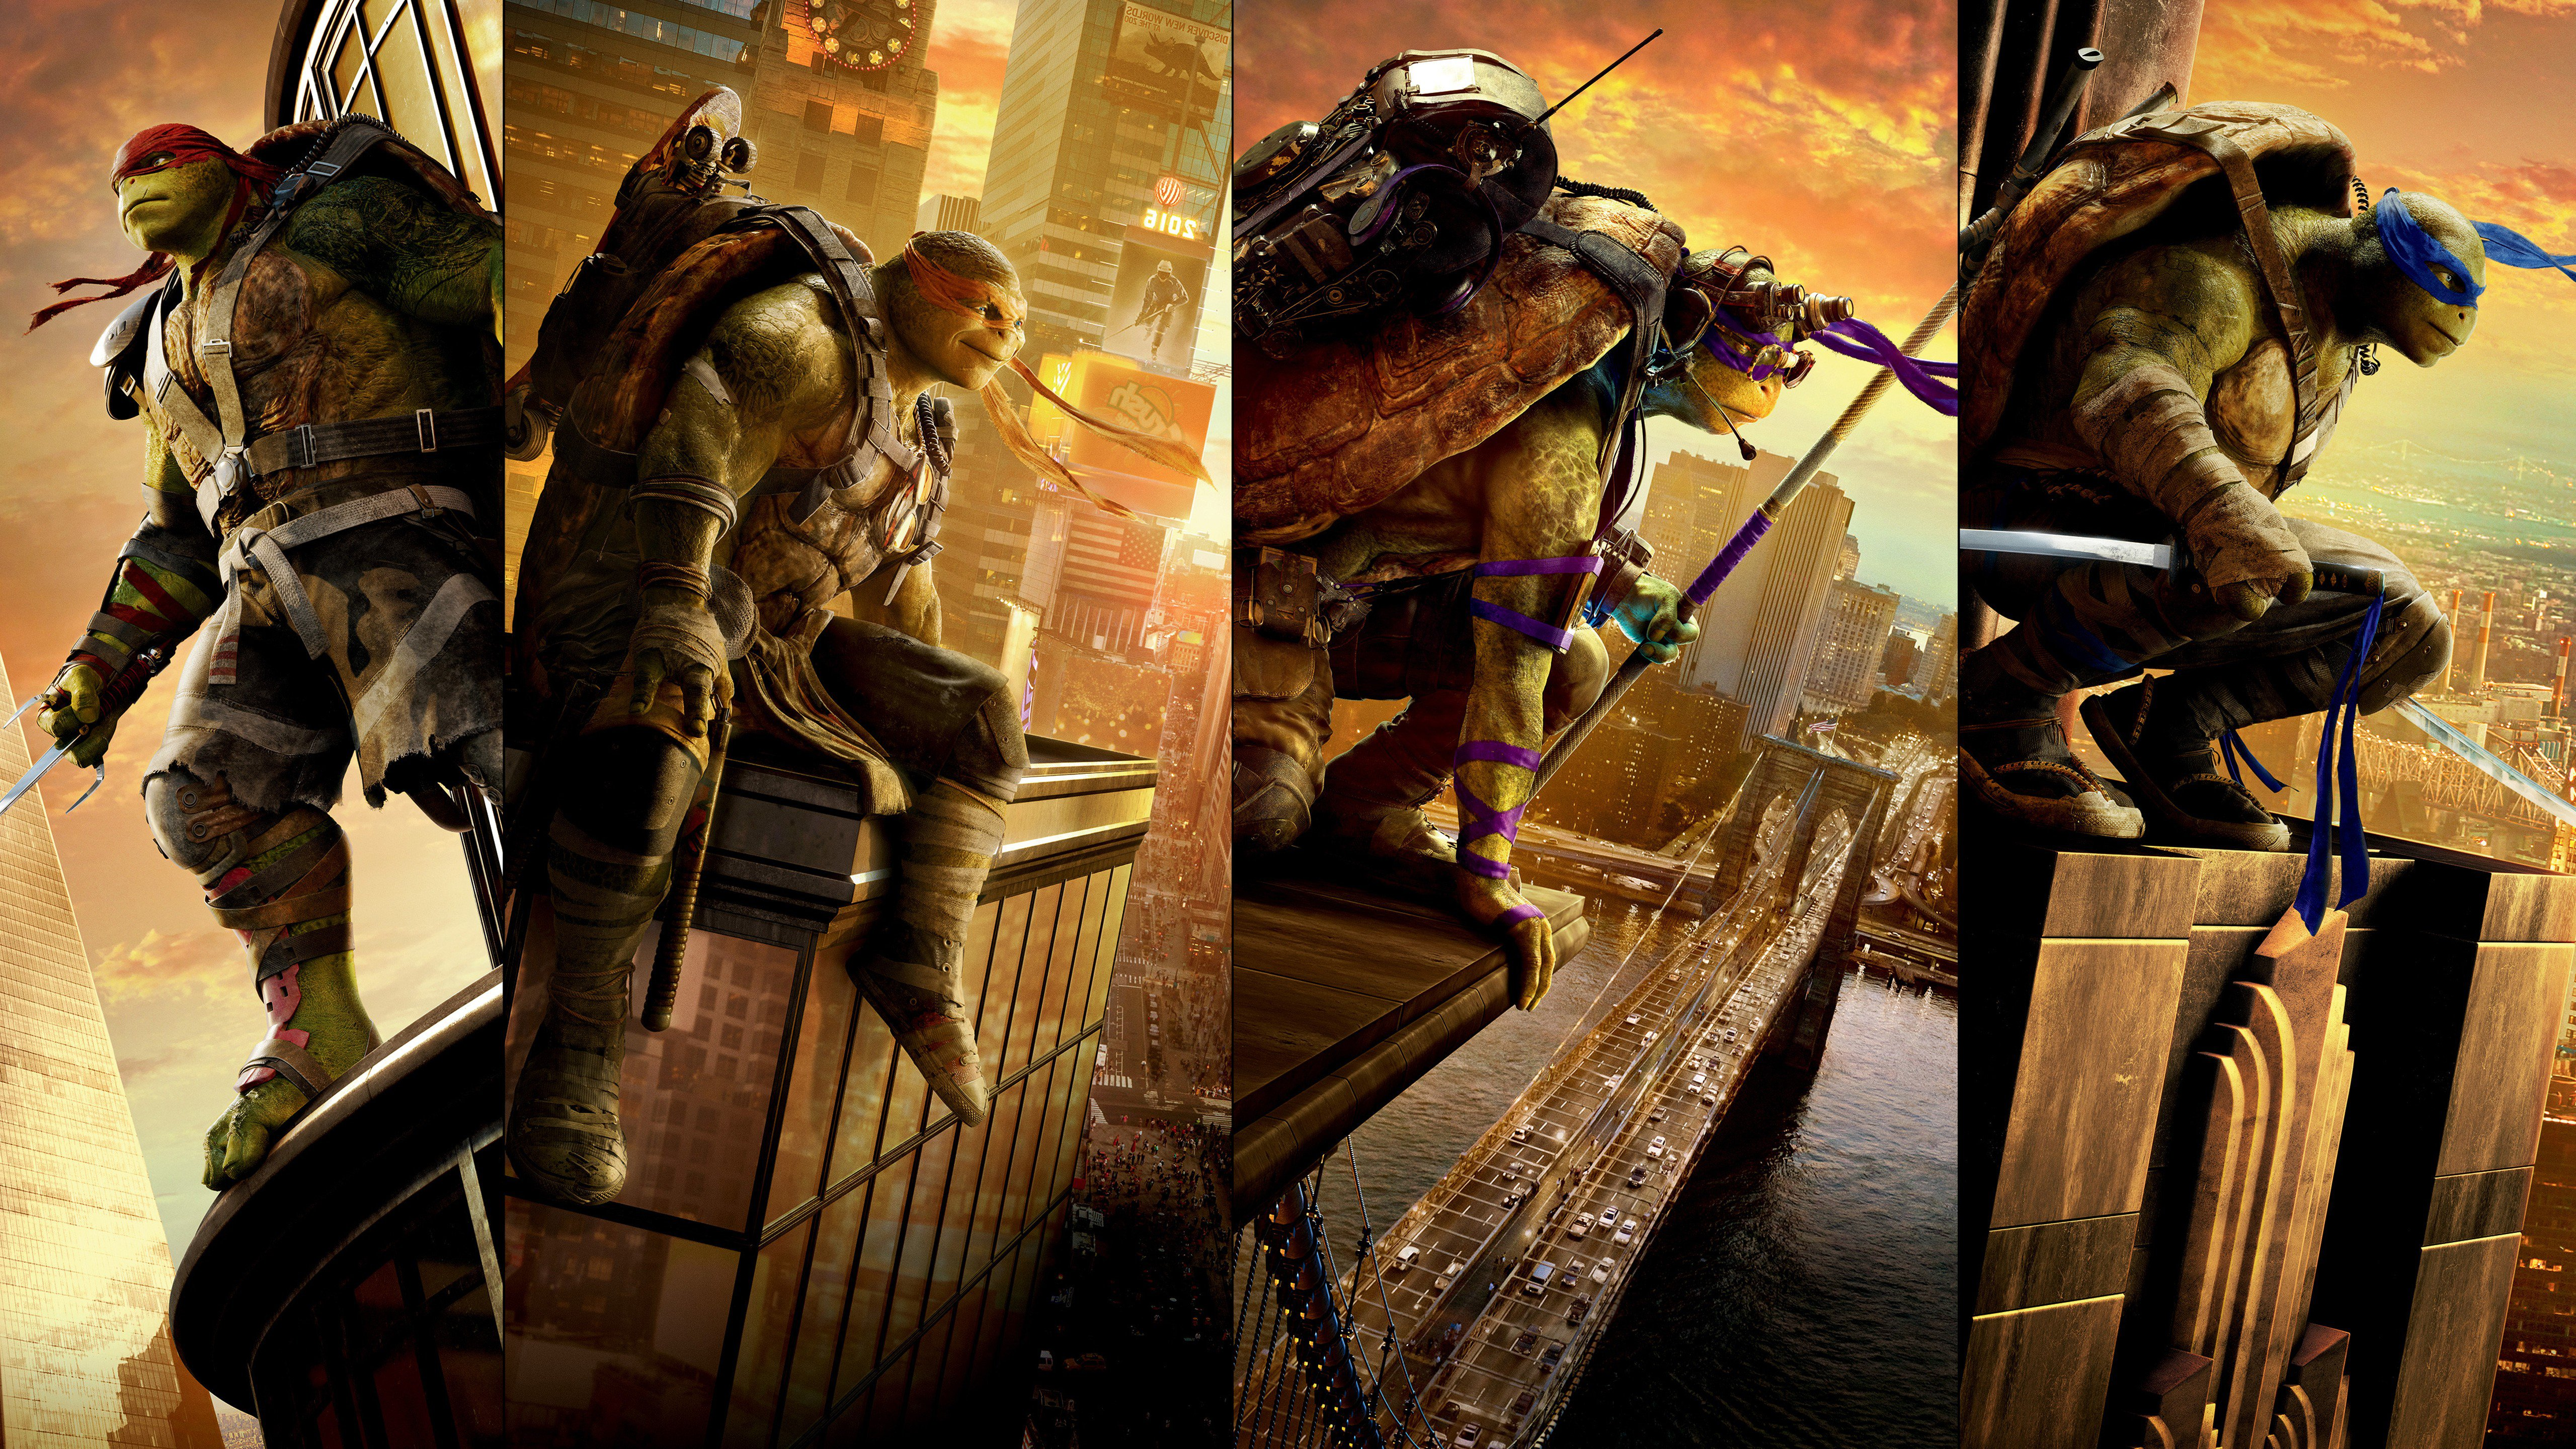 teenage mutant ninja turtles movie image hd movies 4k